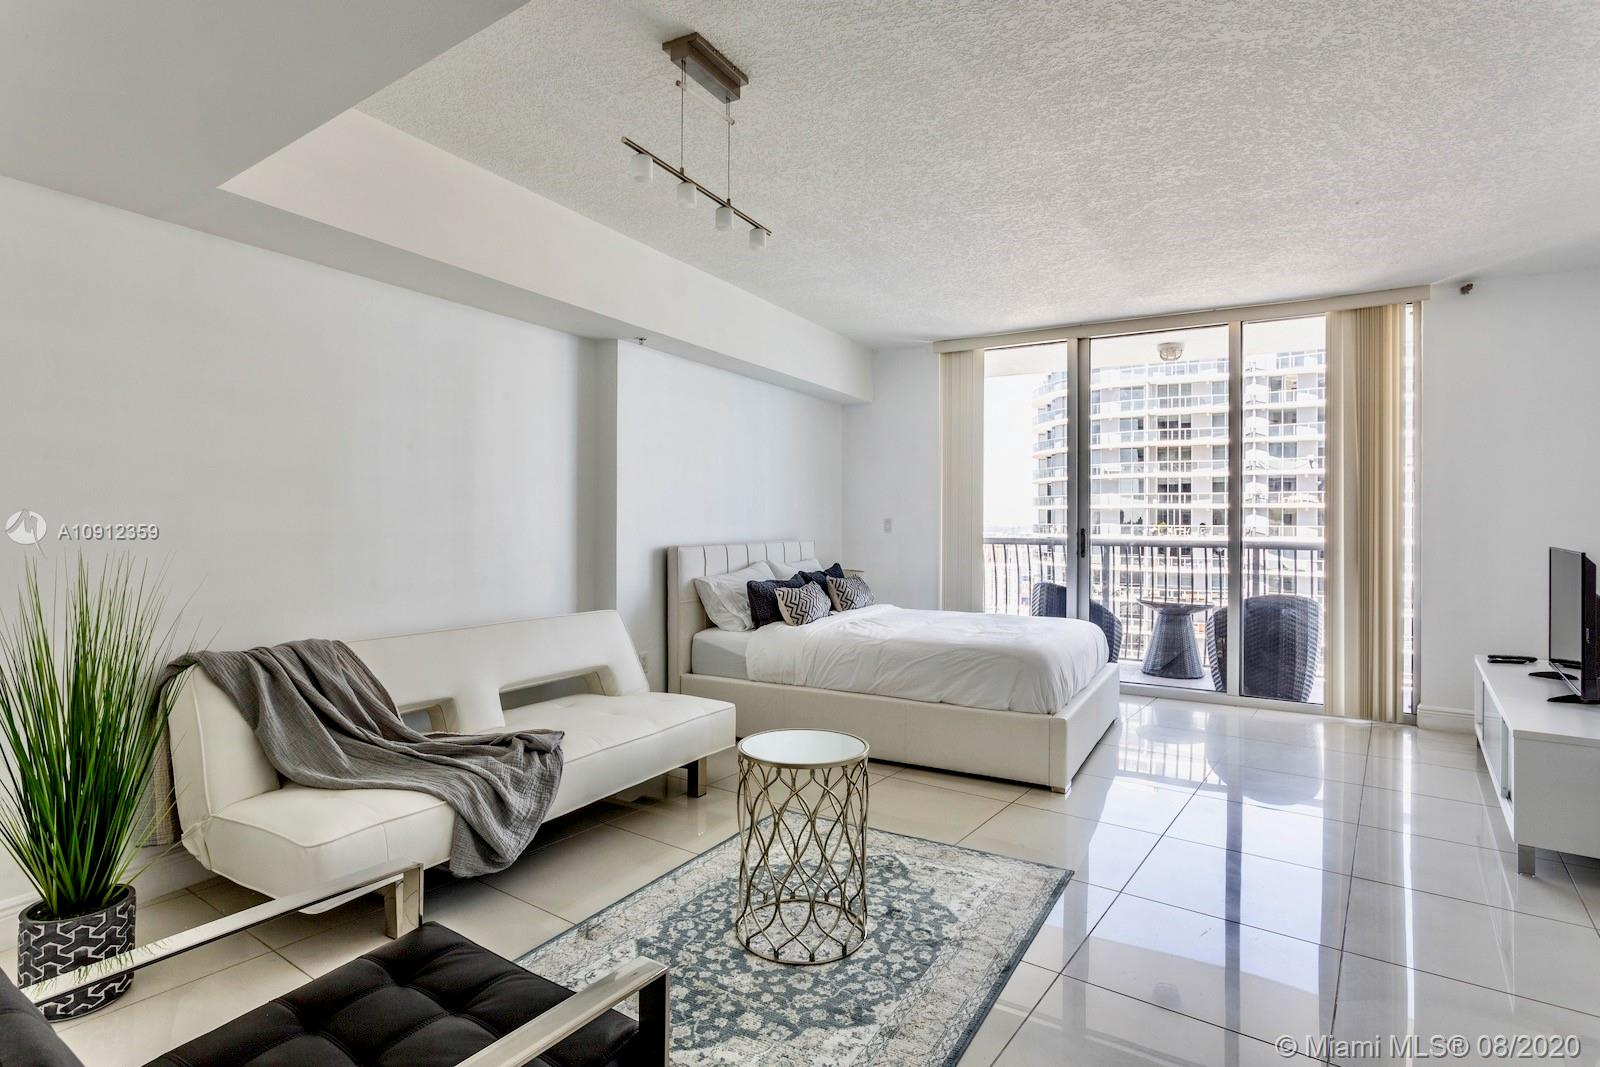 1750 N Bayshore Dr #5007 For Sale A10912359, FL